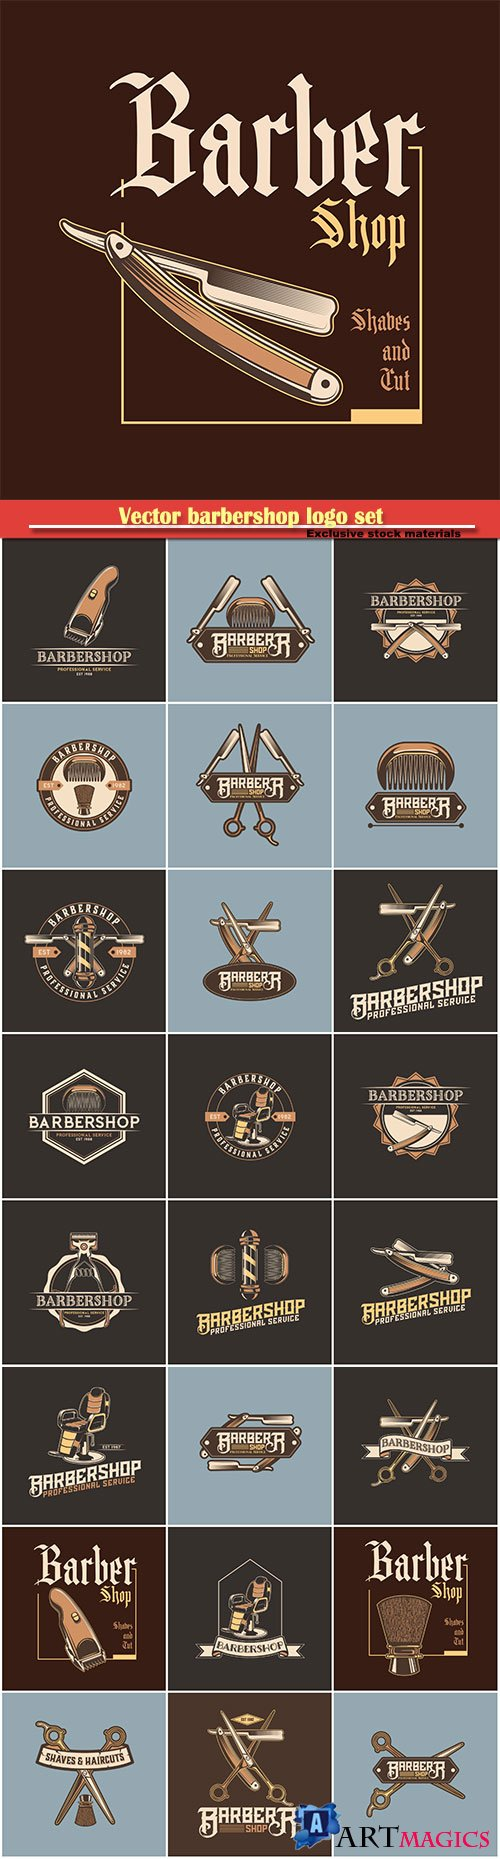 Vector barbershop logo set